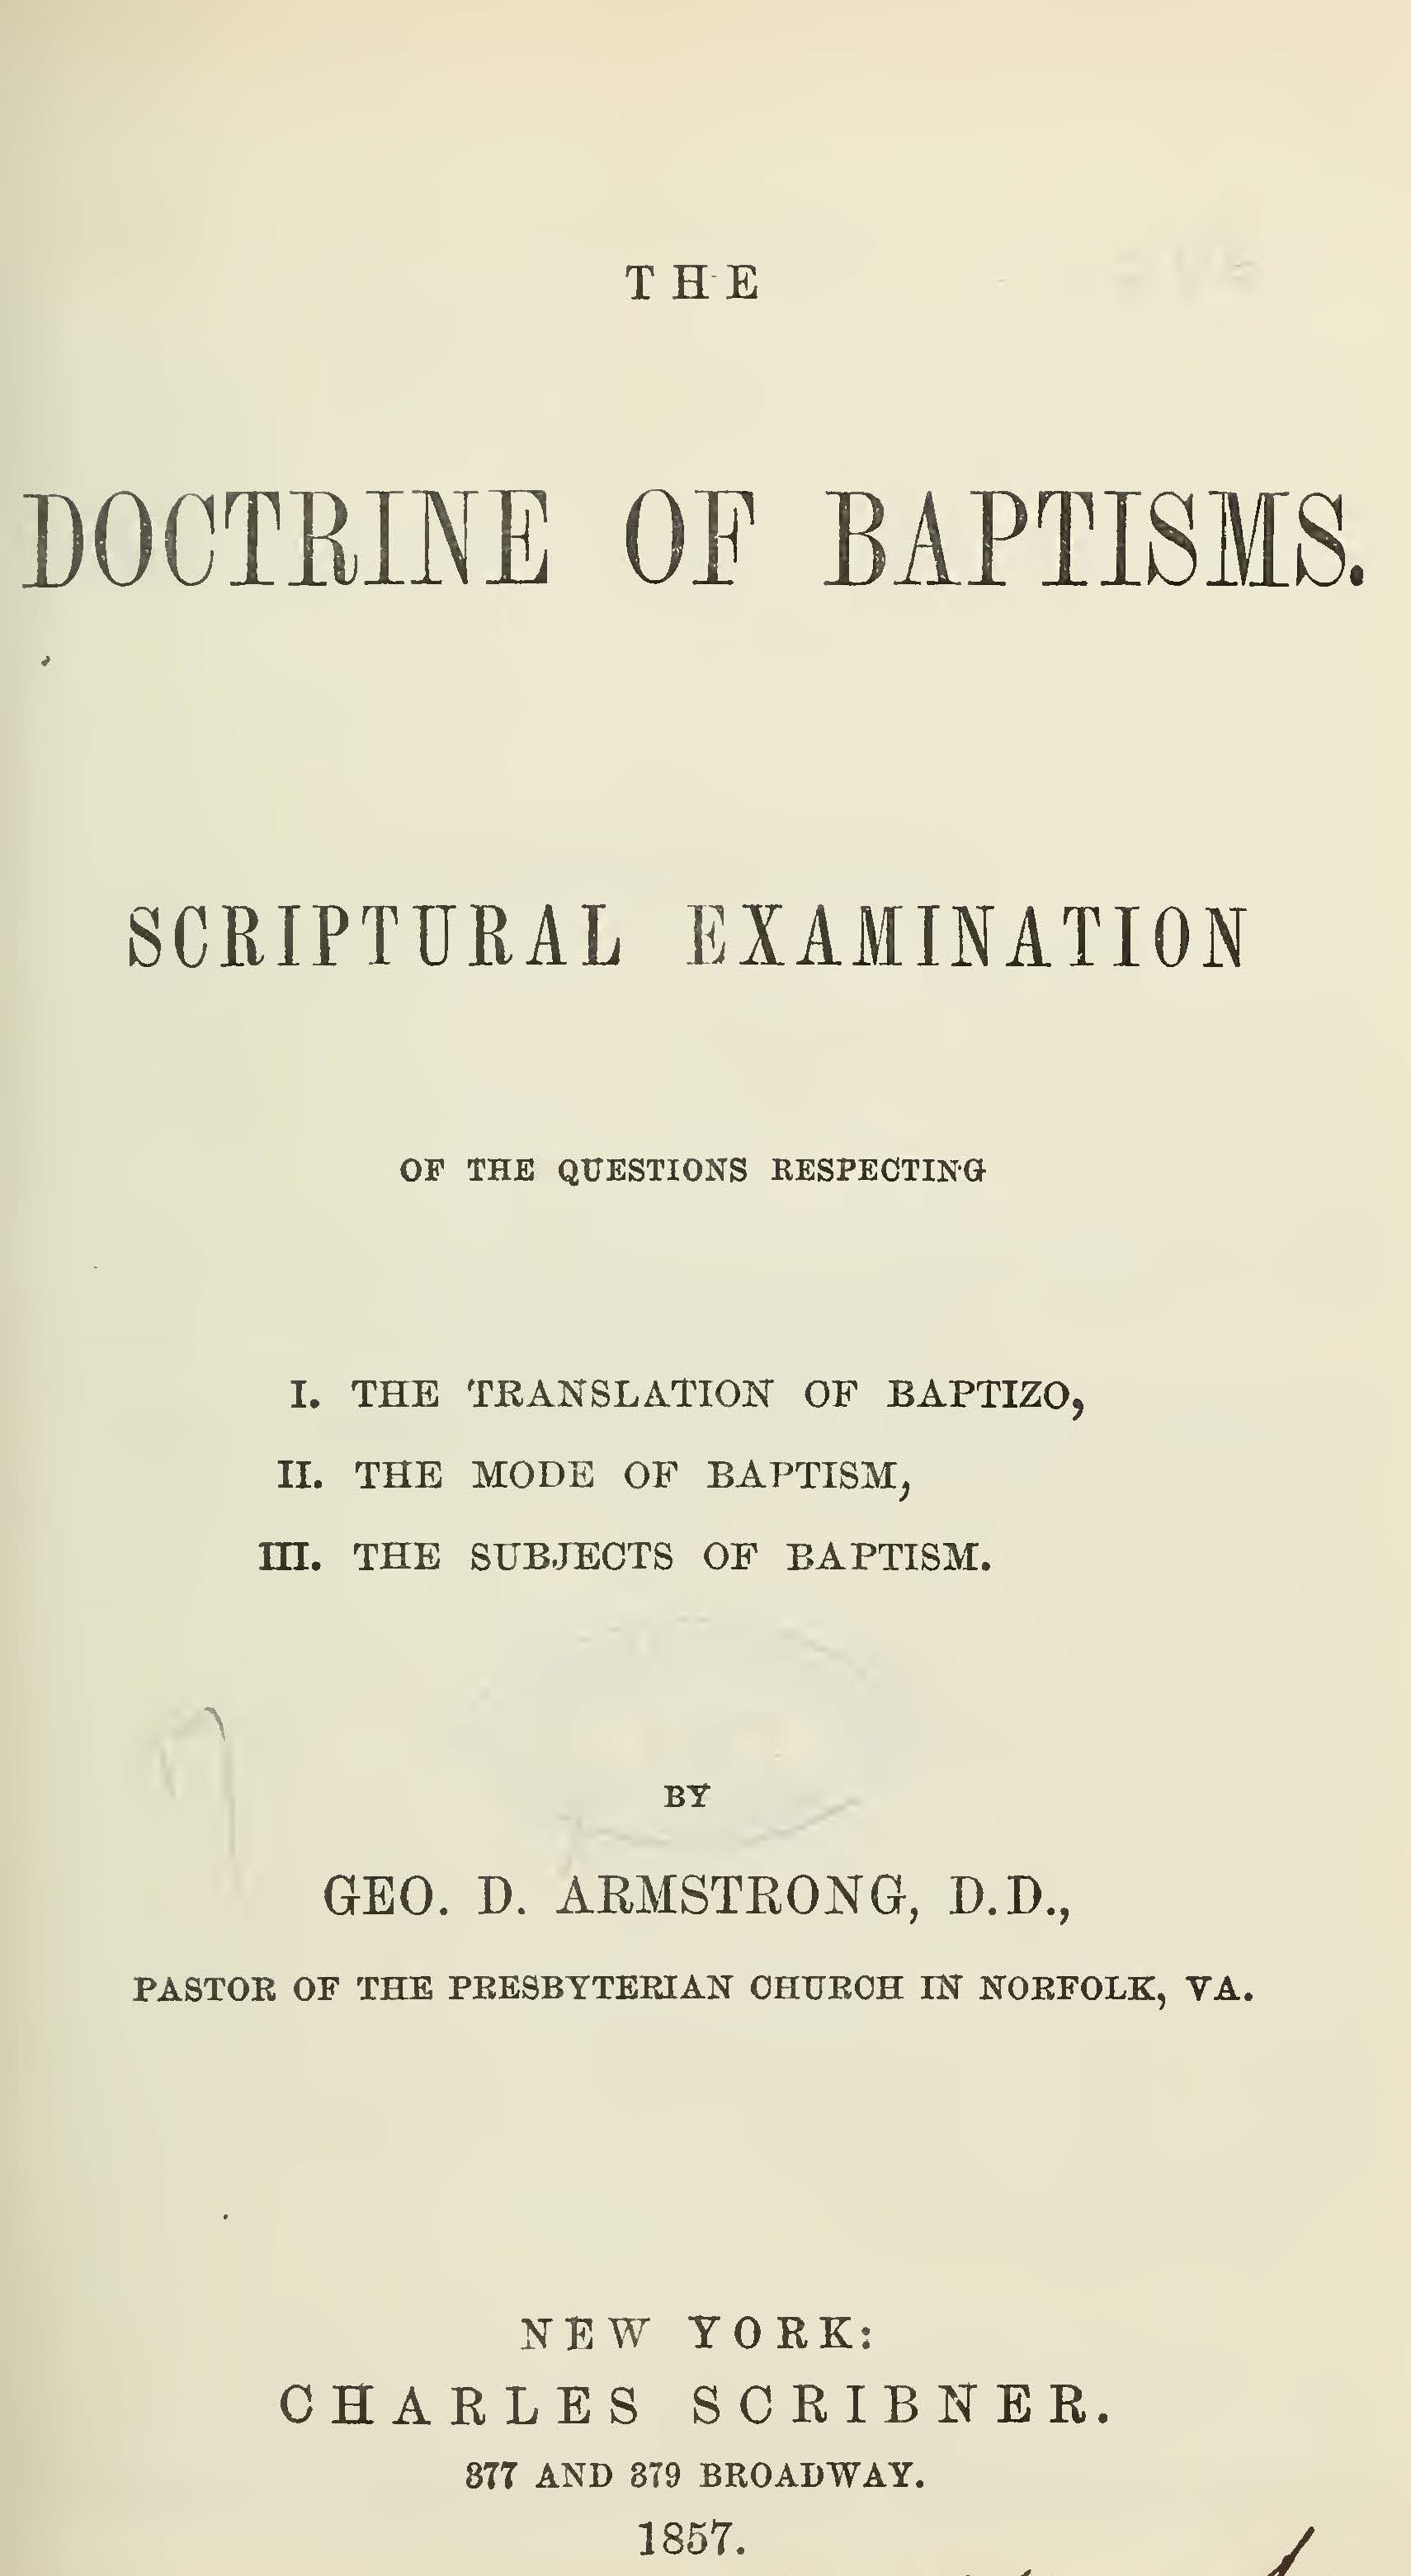 Armstrong, George D - The Doctrine of Baptisms.jpg